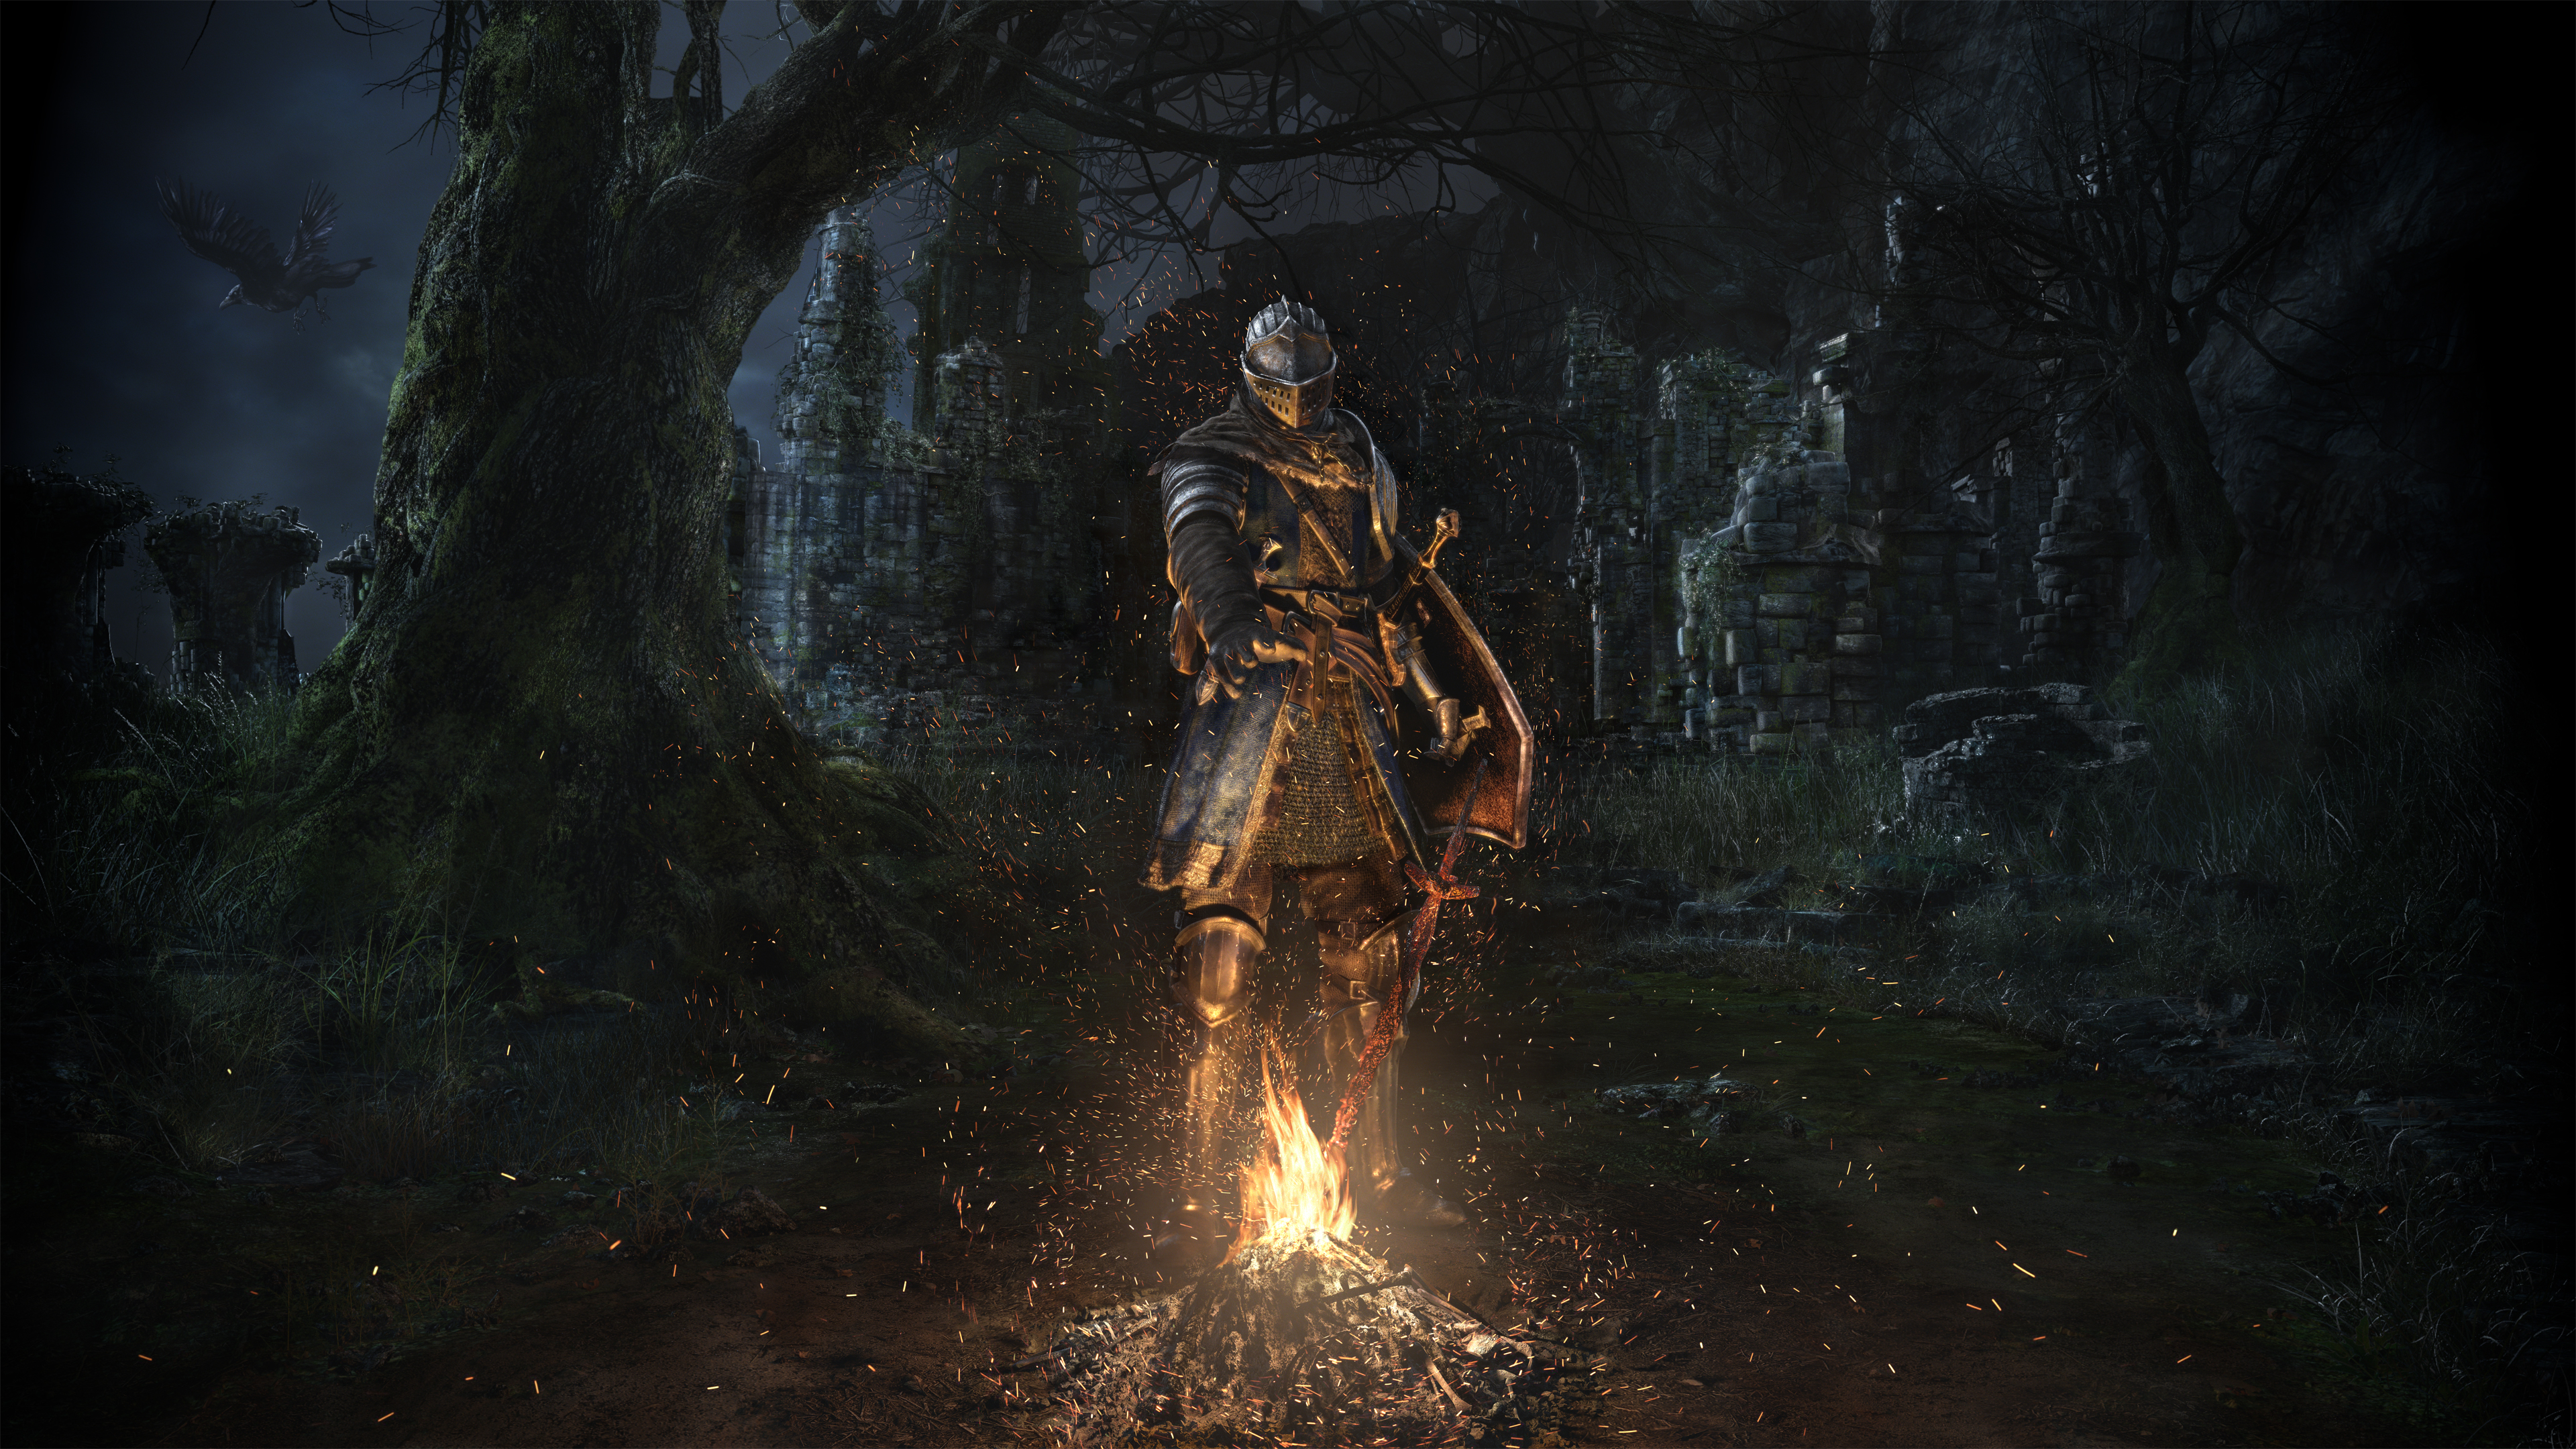 Official Dark Souls Remastered Wallpaper 3840x2160 C1staticflickr